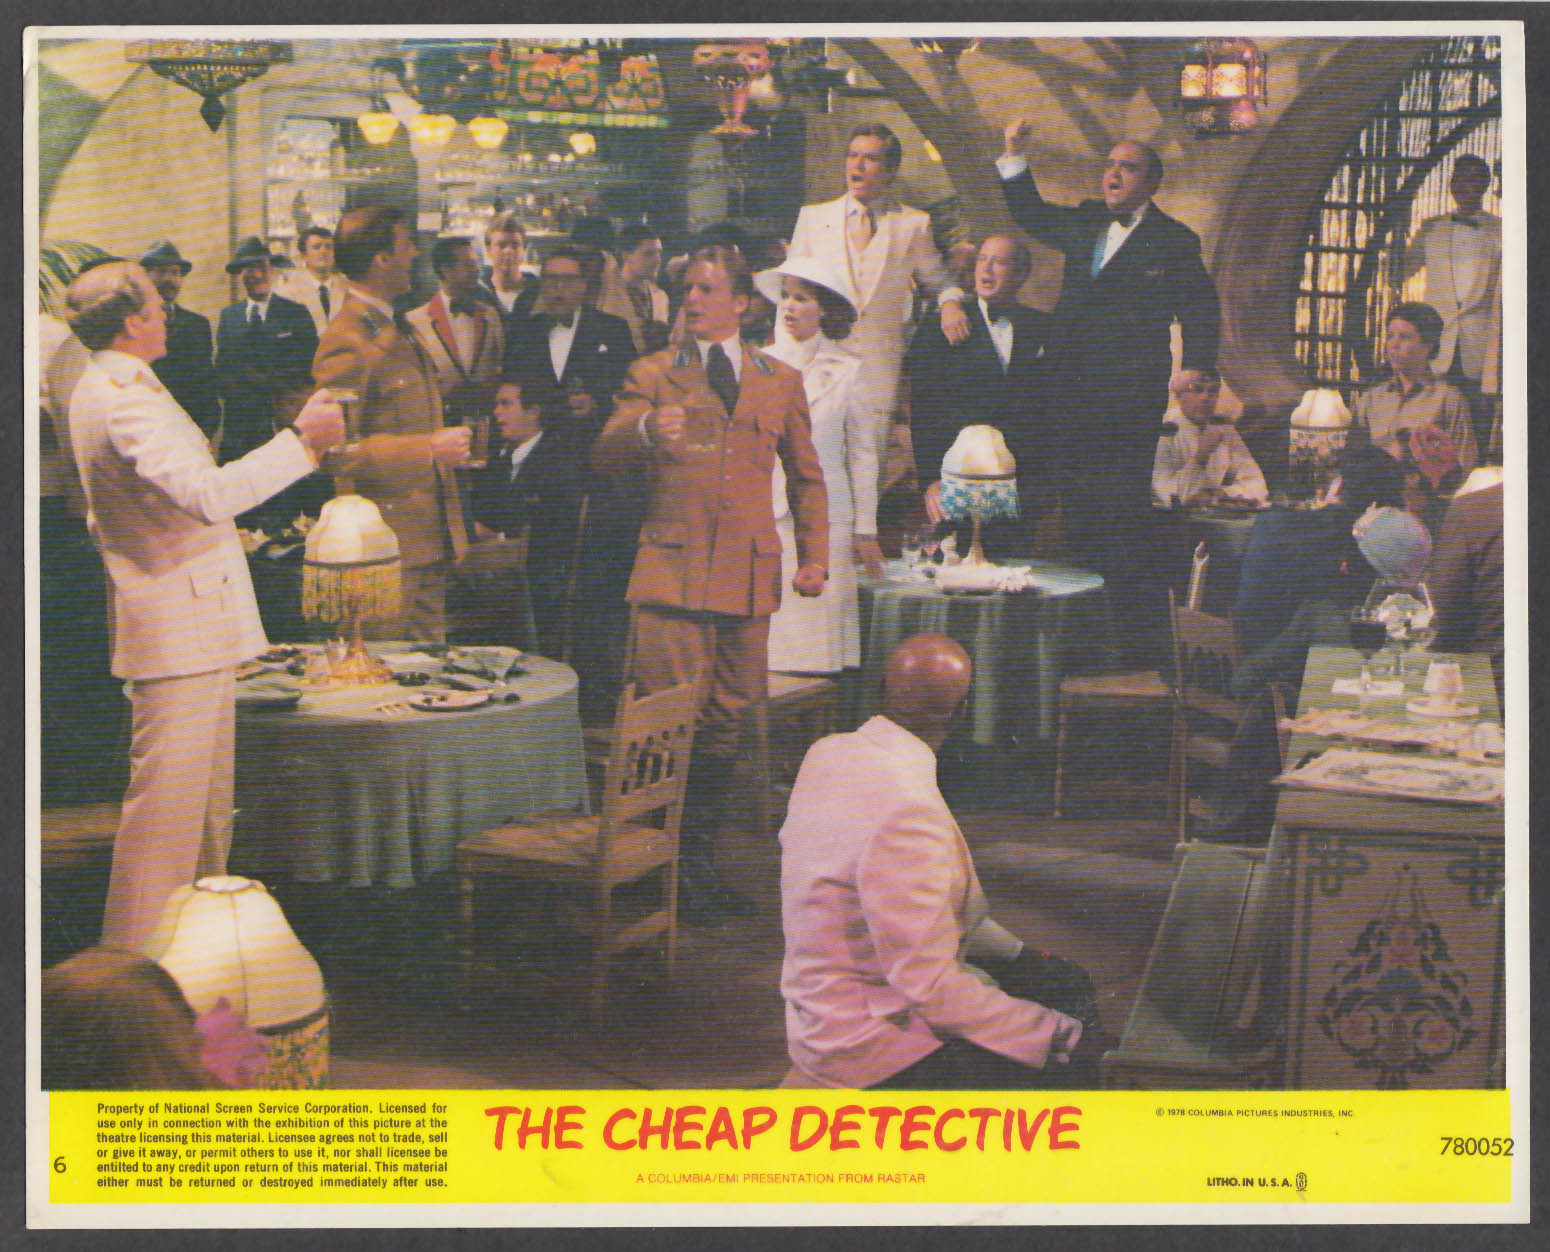 Image for Scatman Crothers Louise Fletcher The Cheap Detective 8x10 lobby card 1978